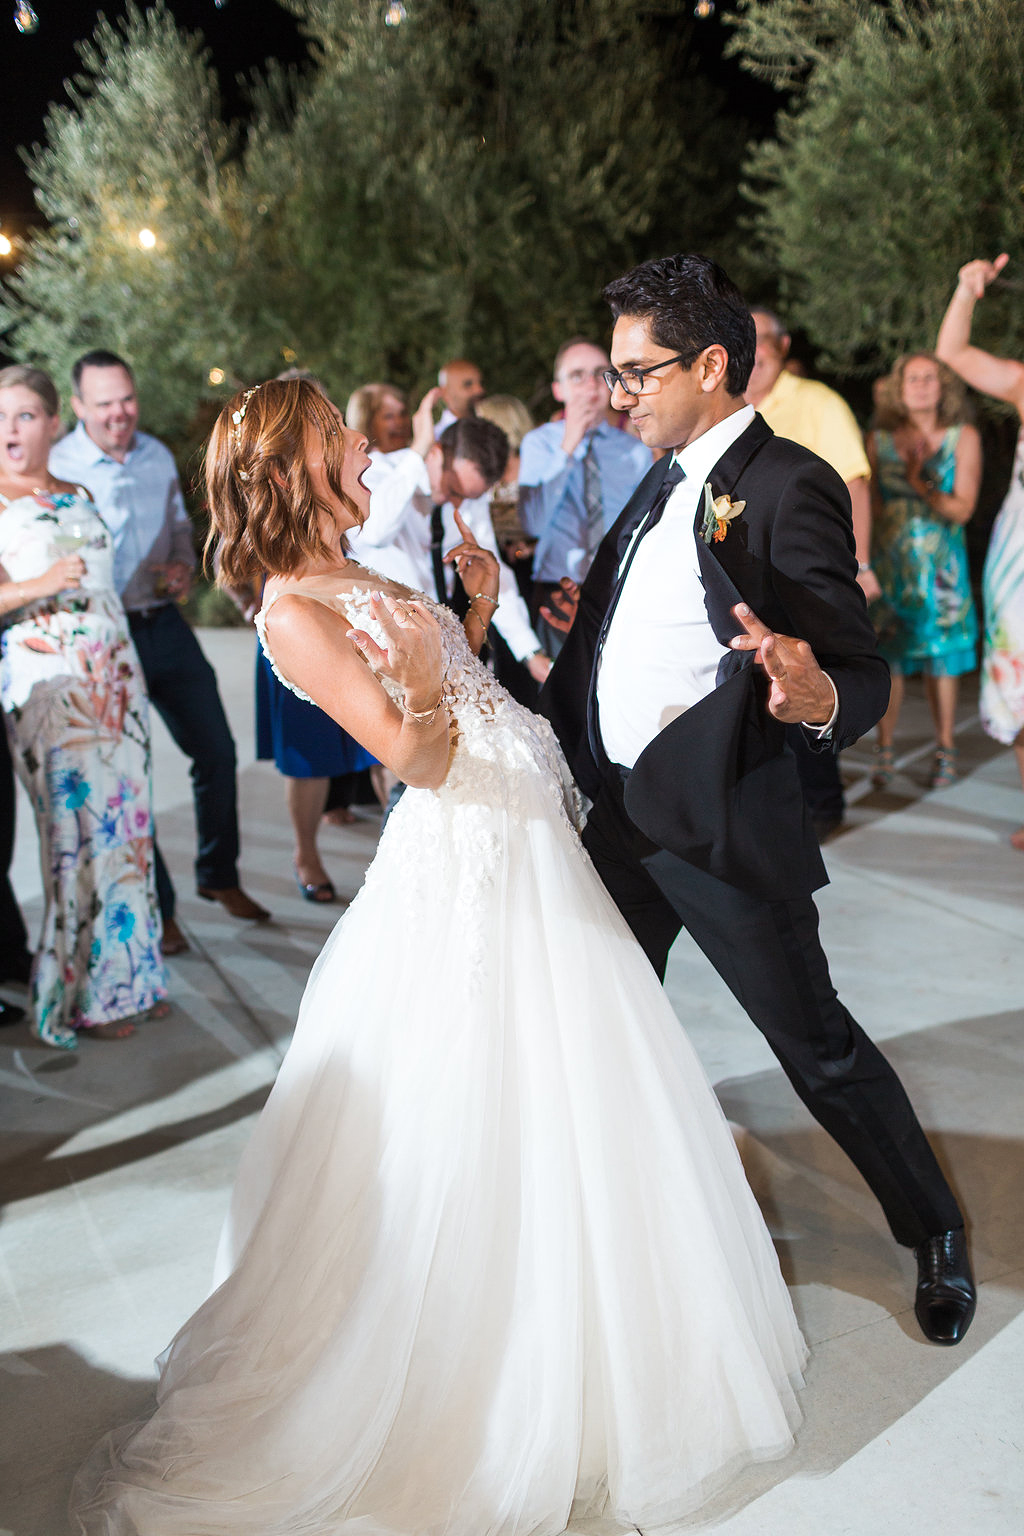 emily adhir wedding dancing couple